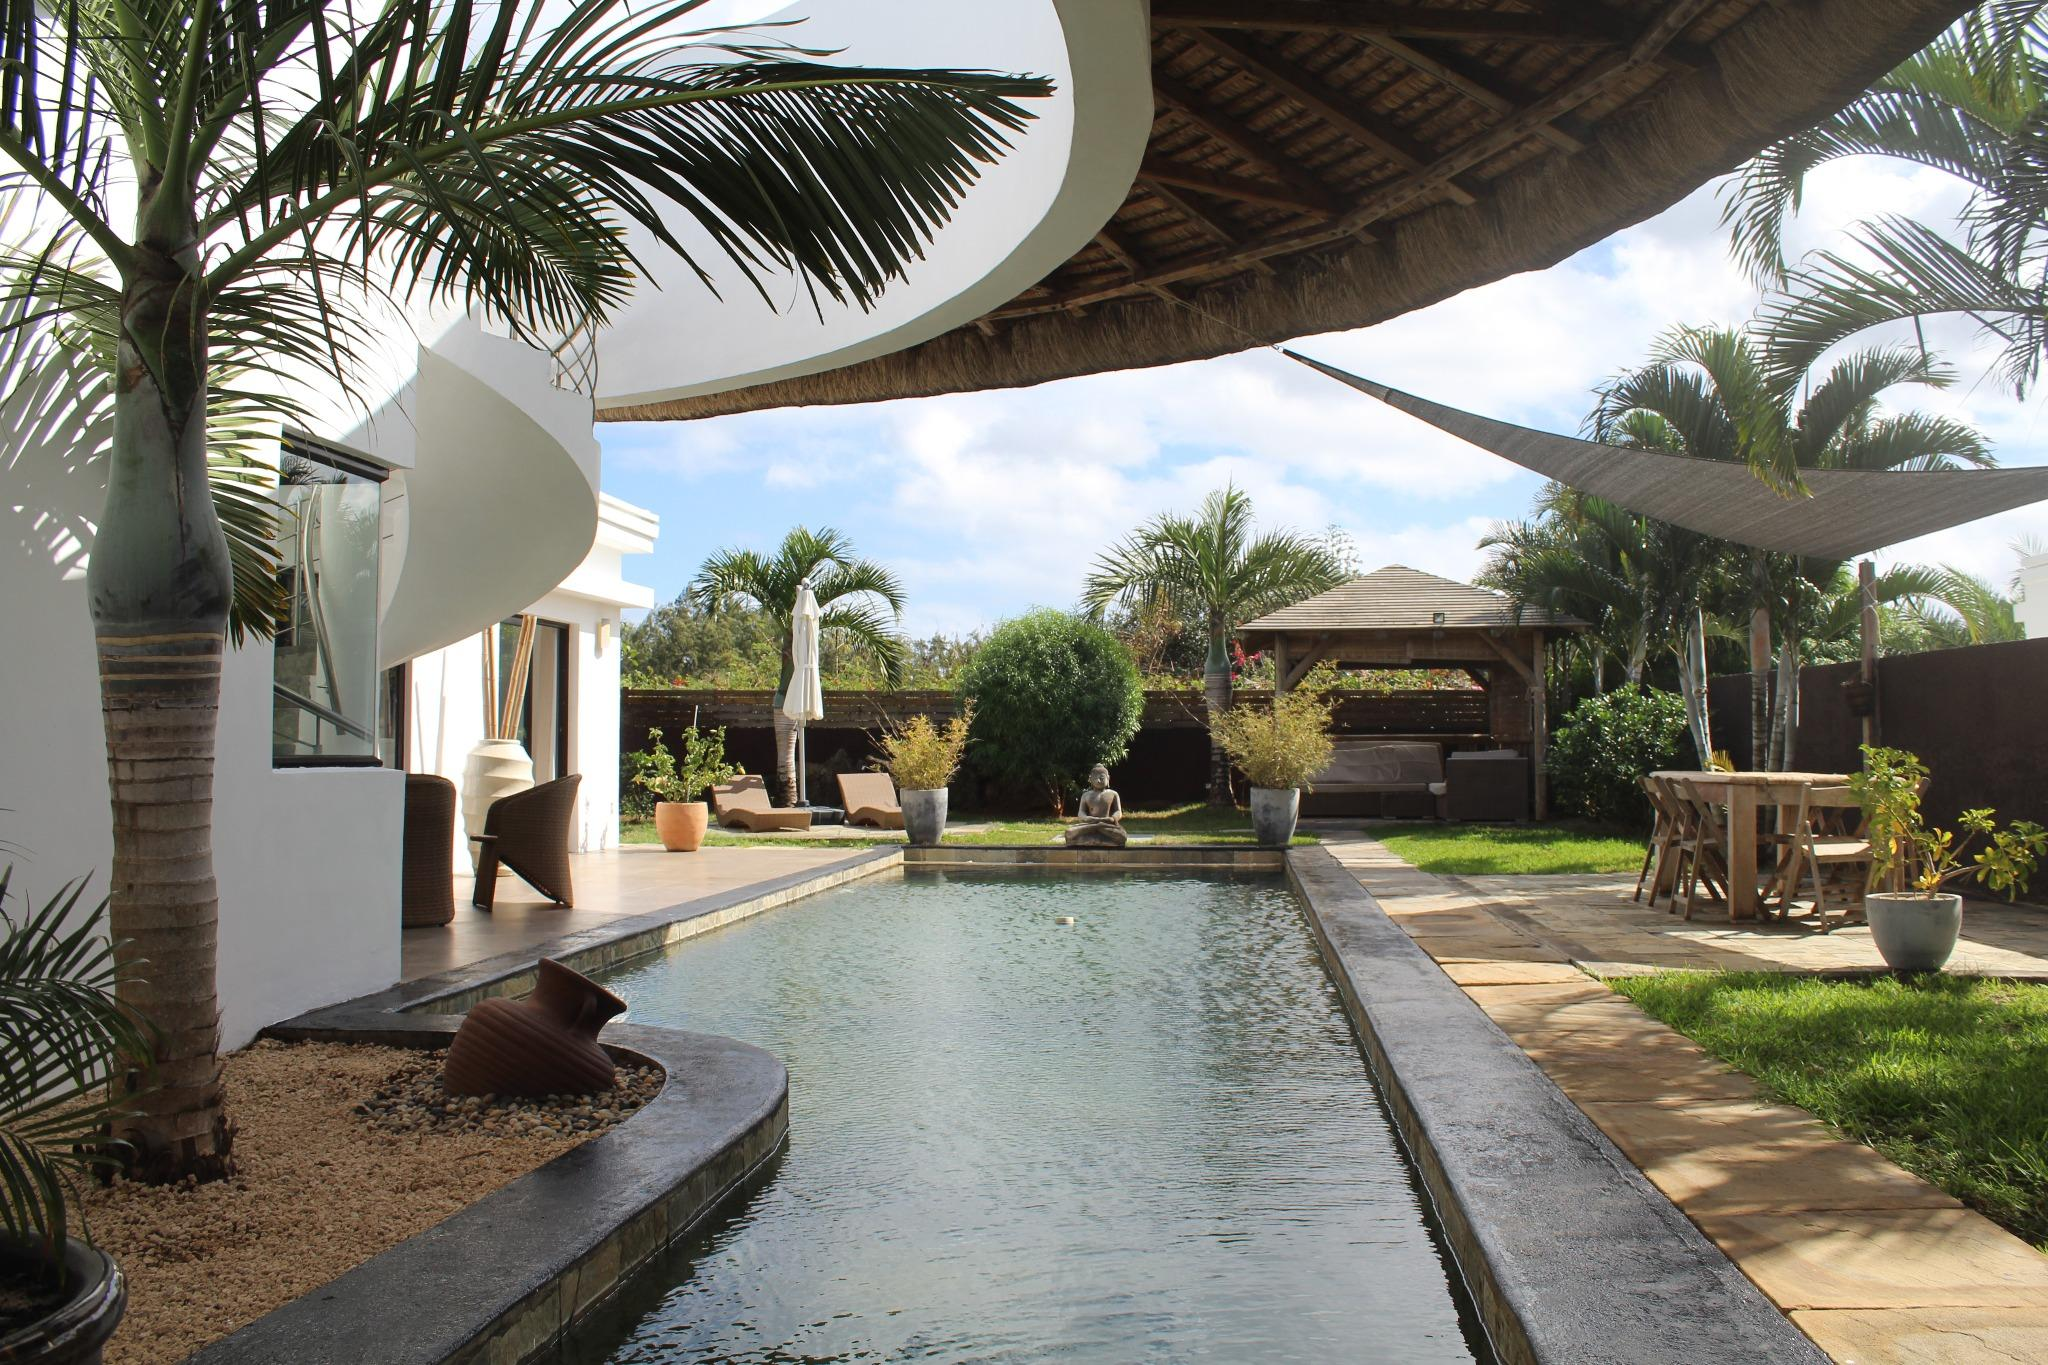 FOR SALE – sumptuous furnished and equipped single storey contemporary villa of 267 m2